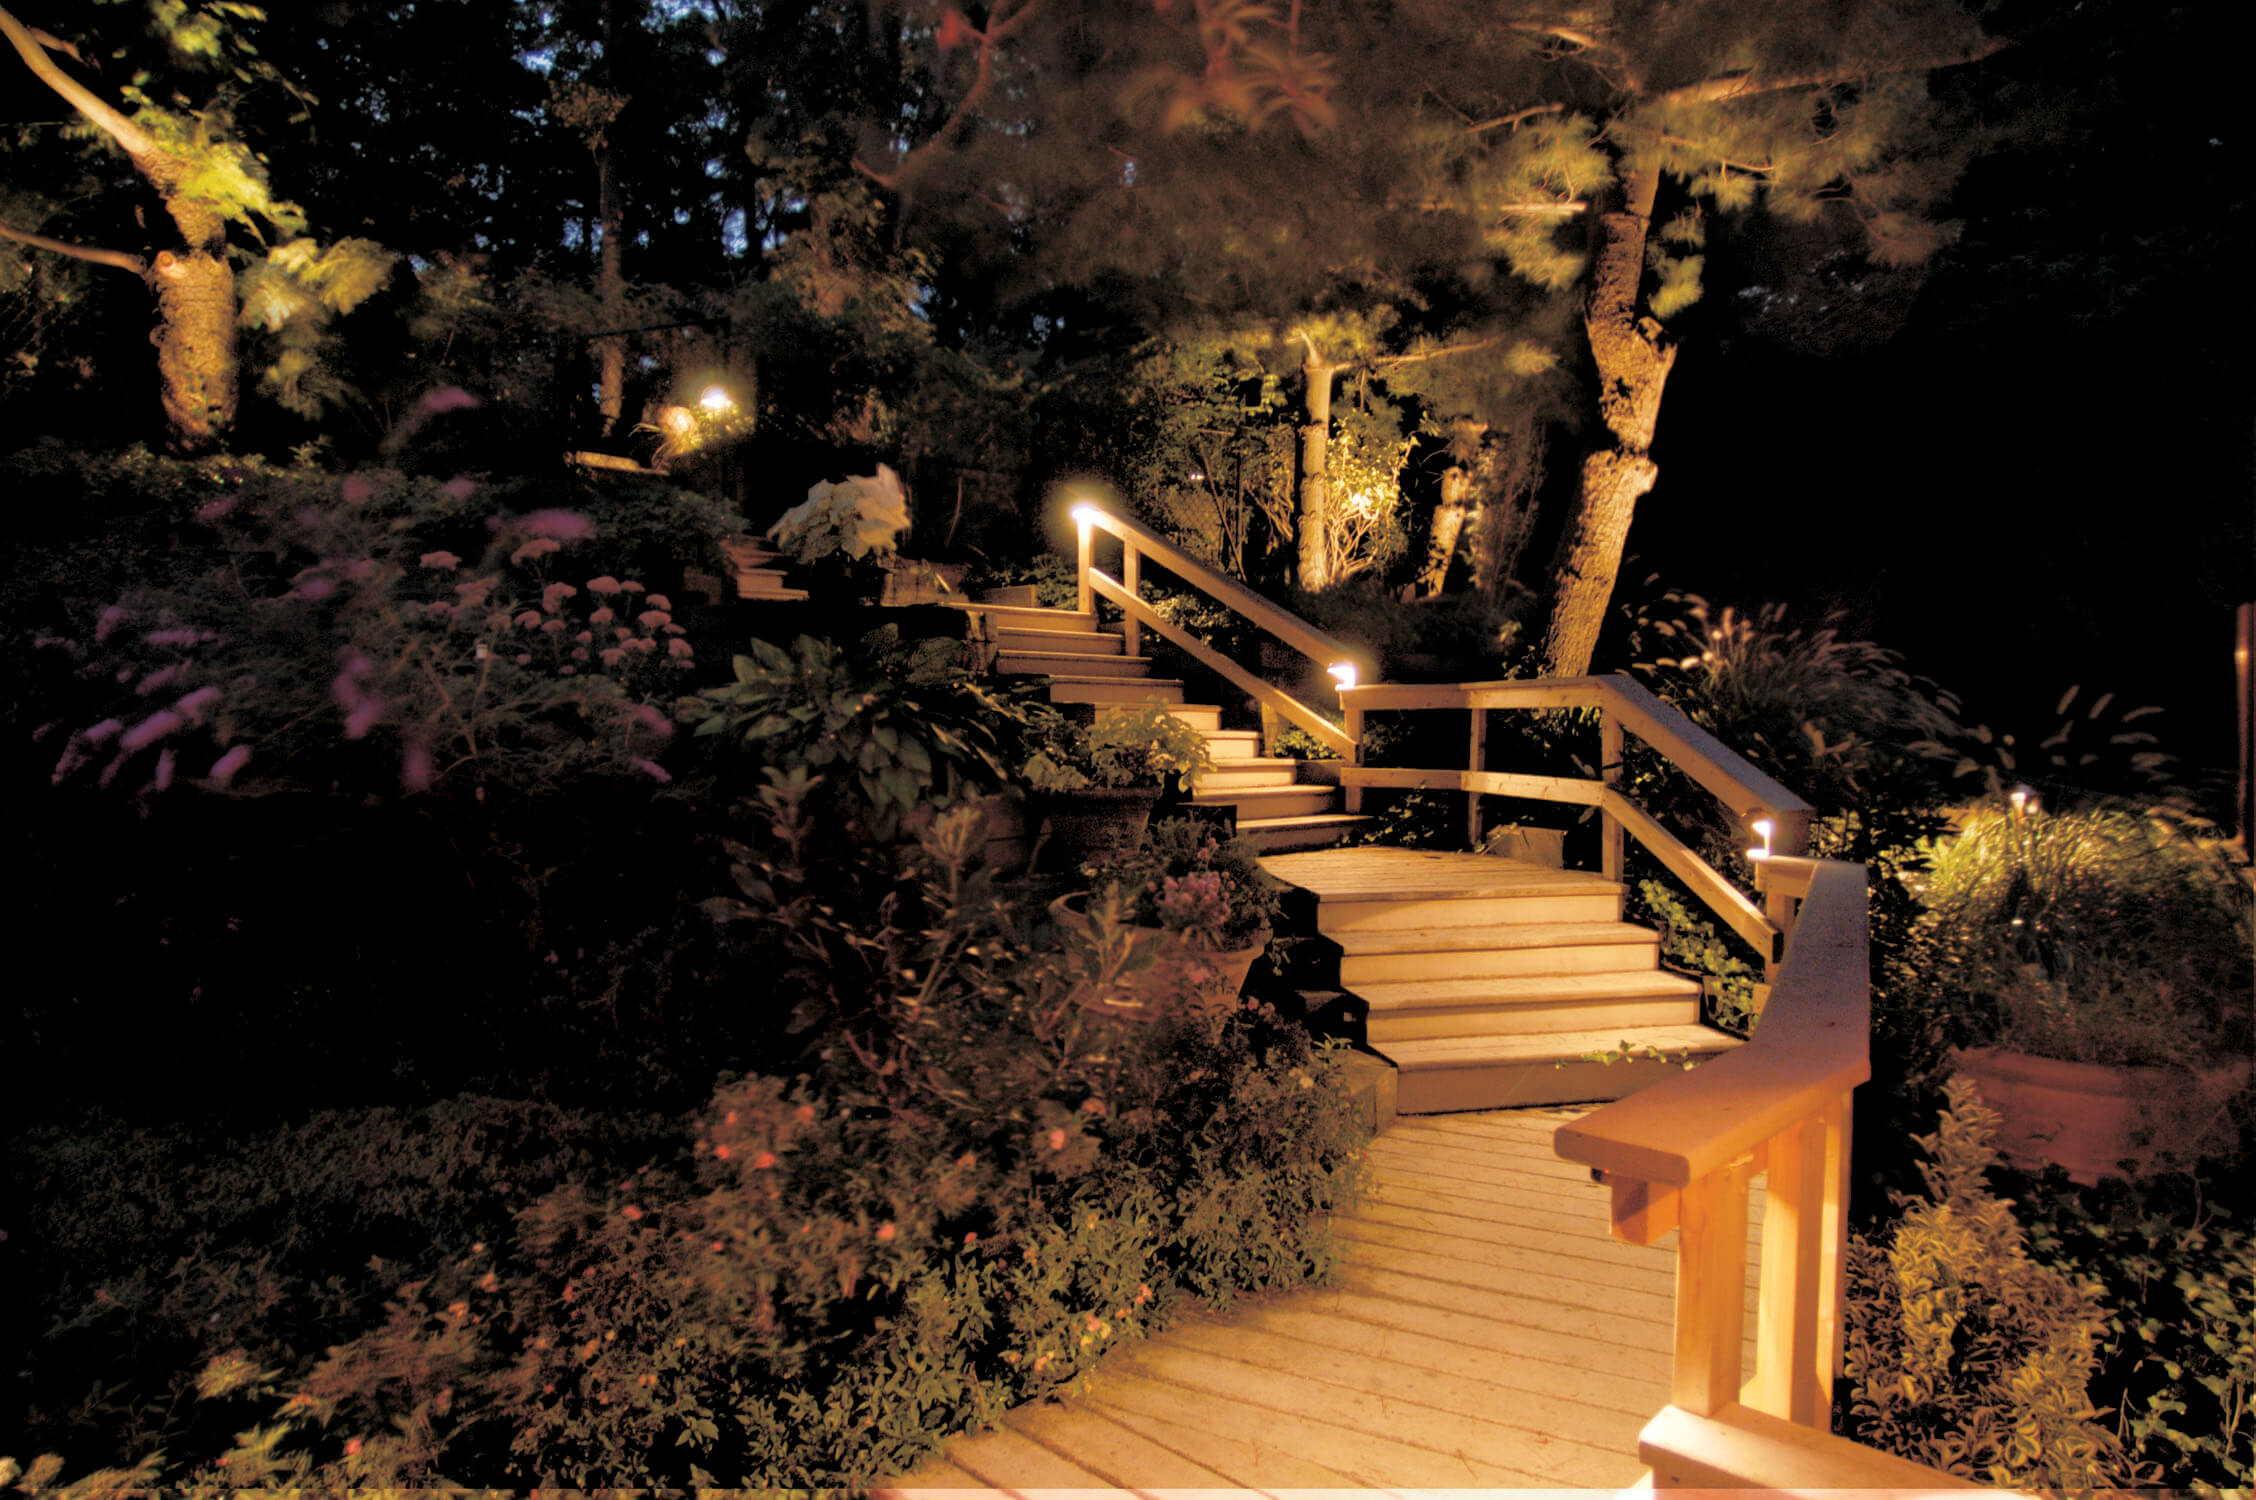 Well lit path and stairs